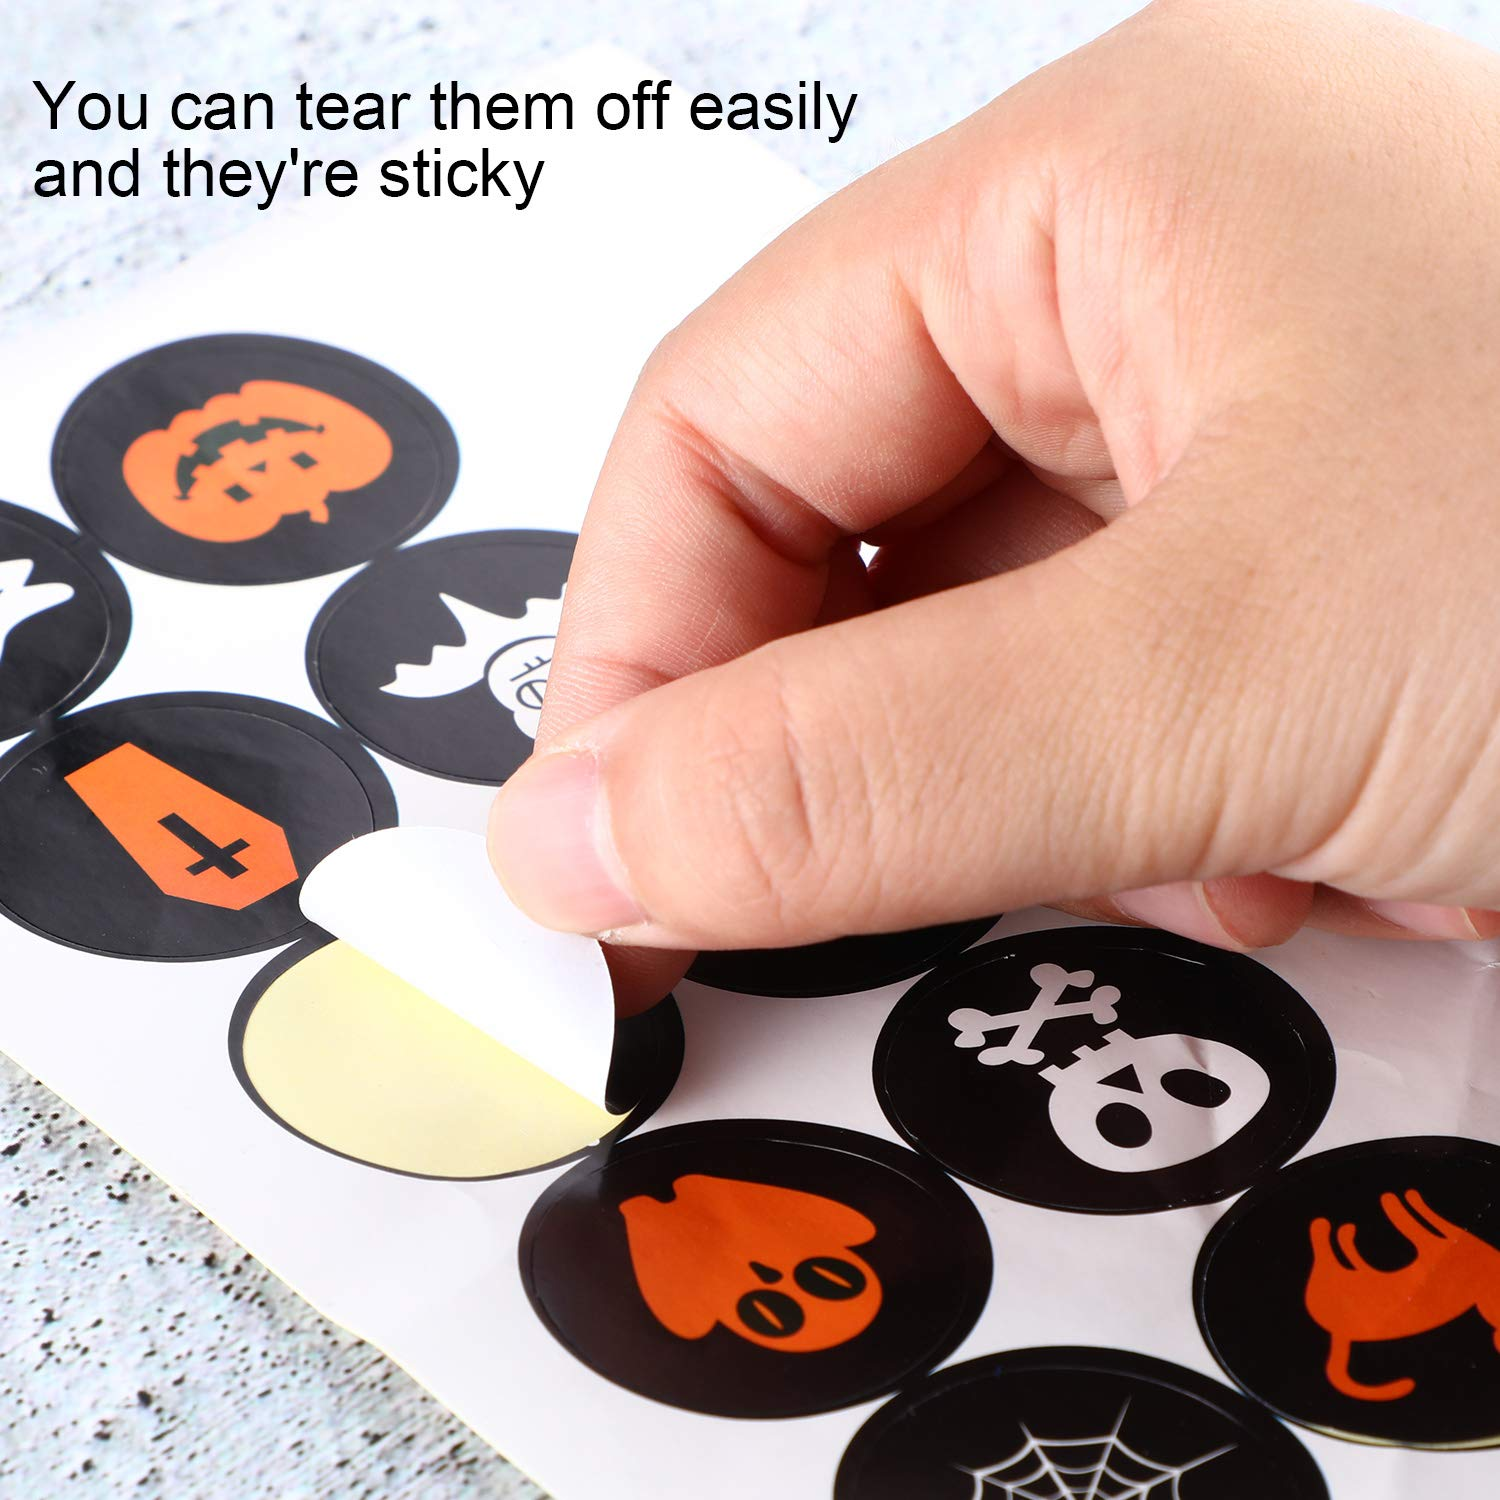 Boao 100 Pieces Halloween Stickers Round Seal Label Stickers Assorted Pumpkin Skull Bat Ghost Pattern Stickers for Halloween Party Decoration